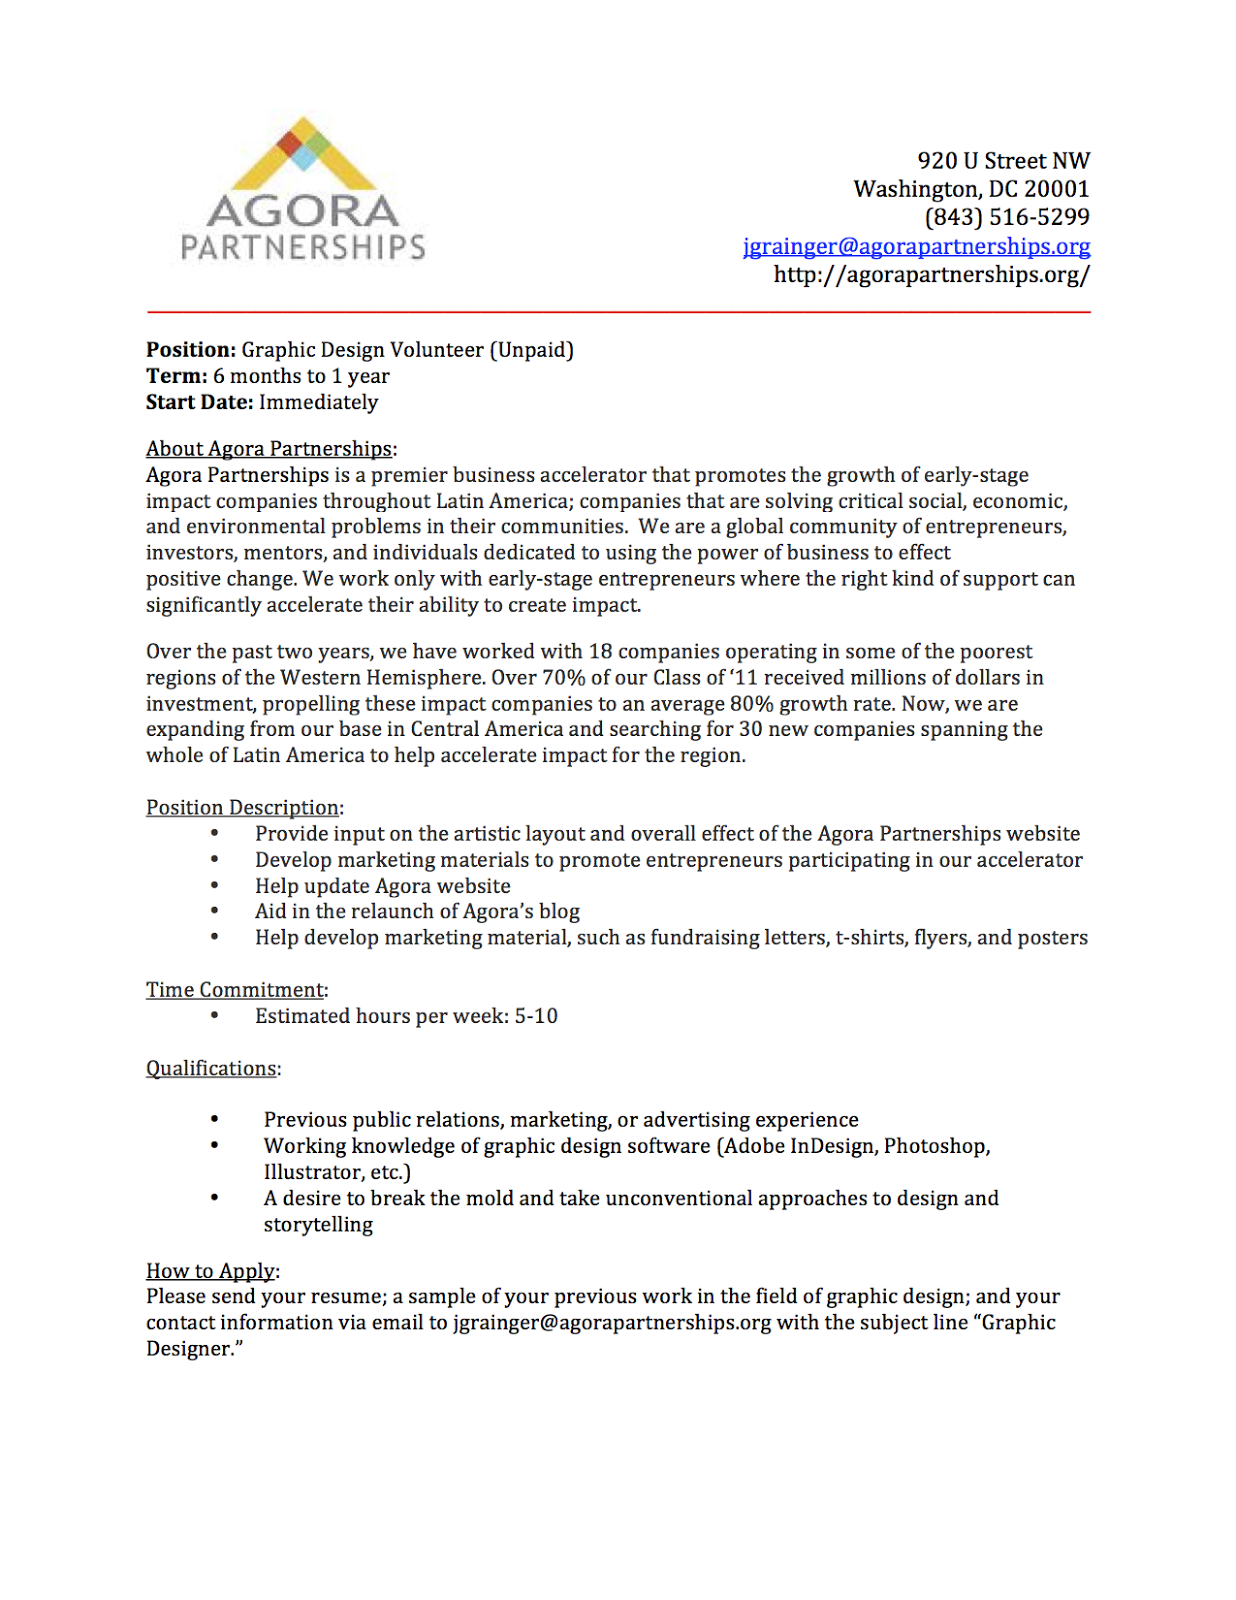 Interior Design Student Cover Letter Examples